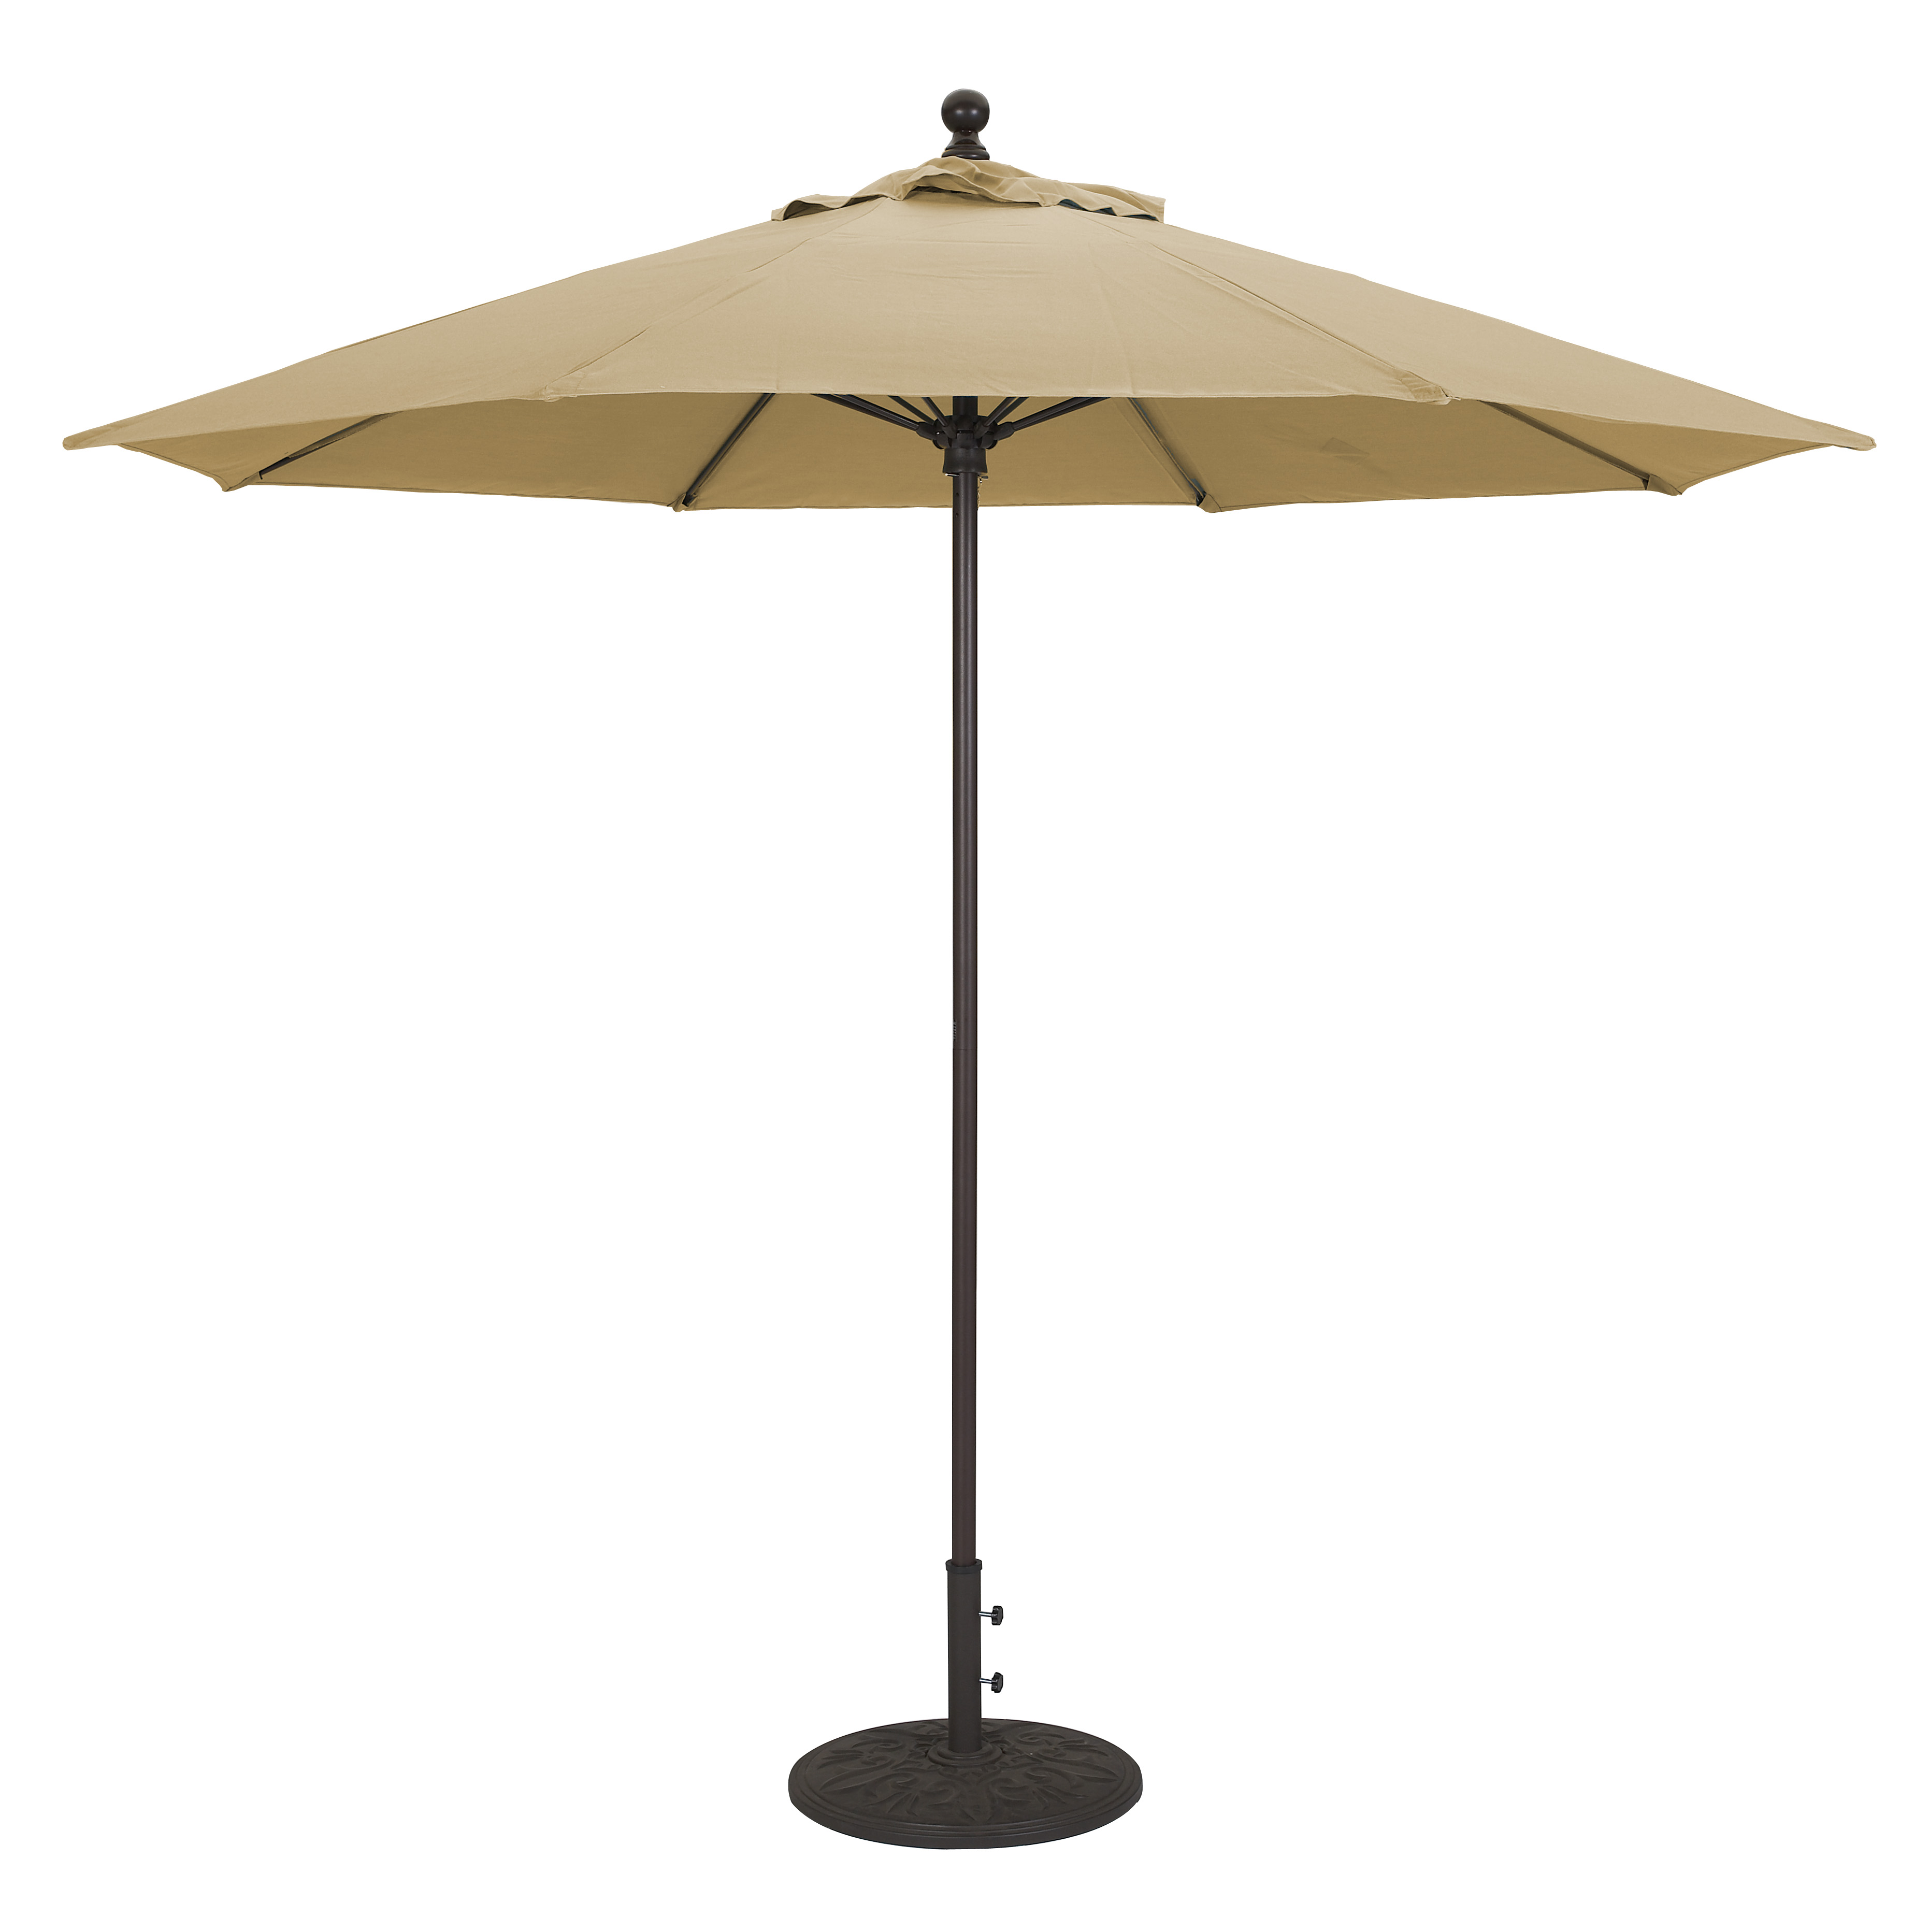 Backyard Umbrella Parts : Fiberglass Umbrellas